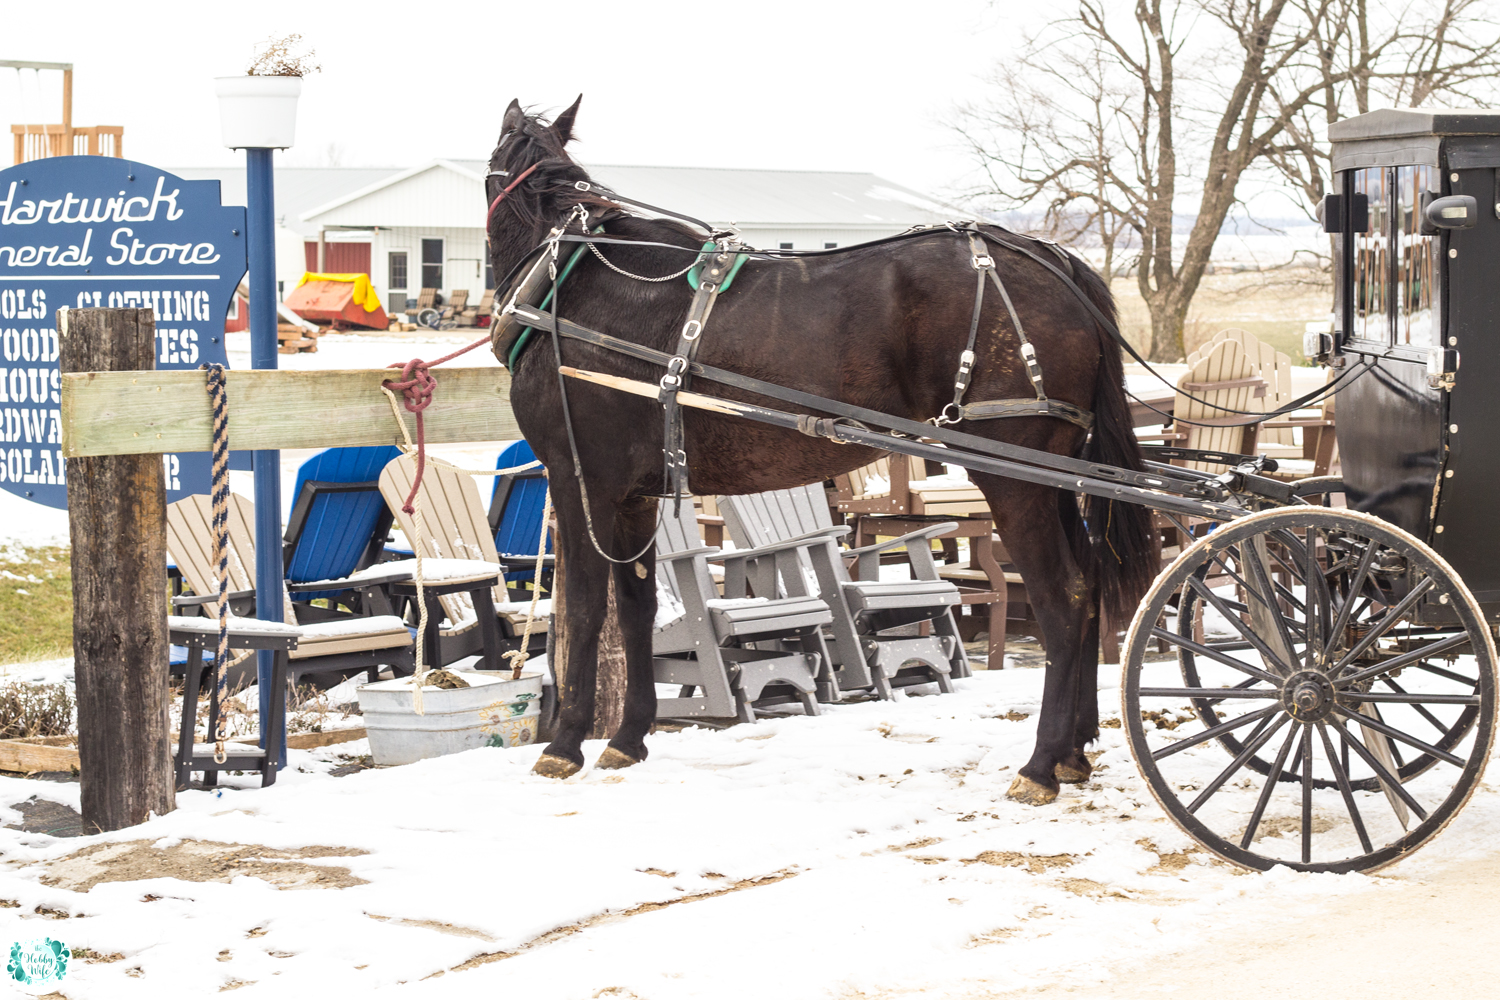 Amish Community of Delaware County, Iowa